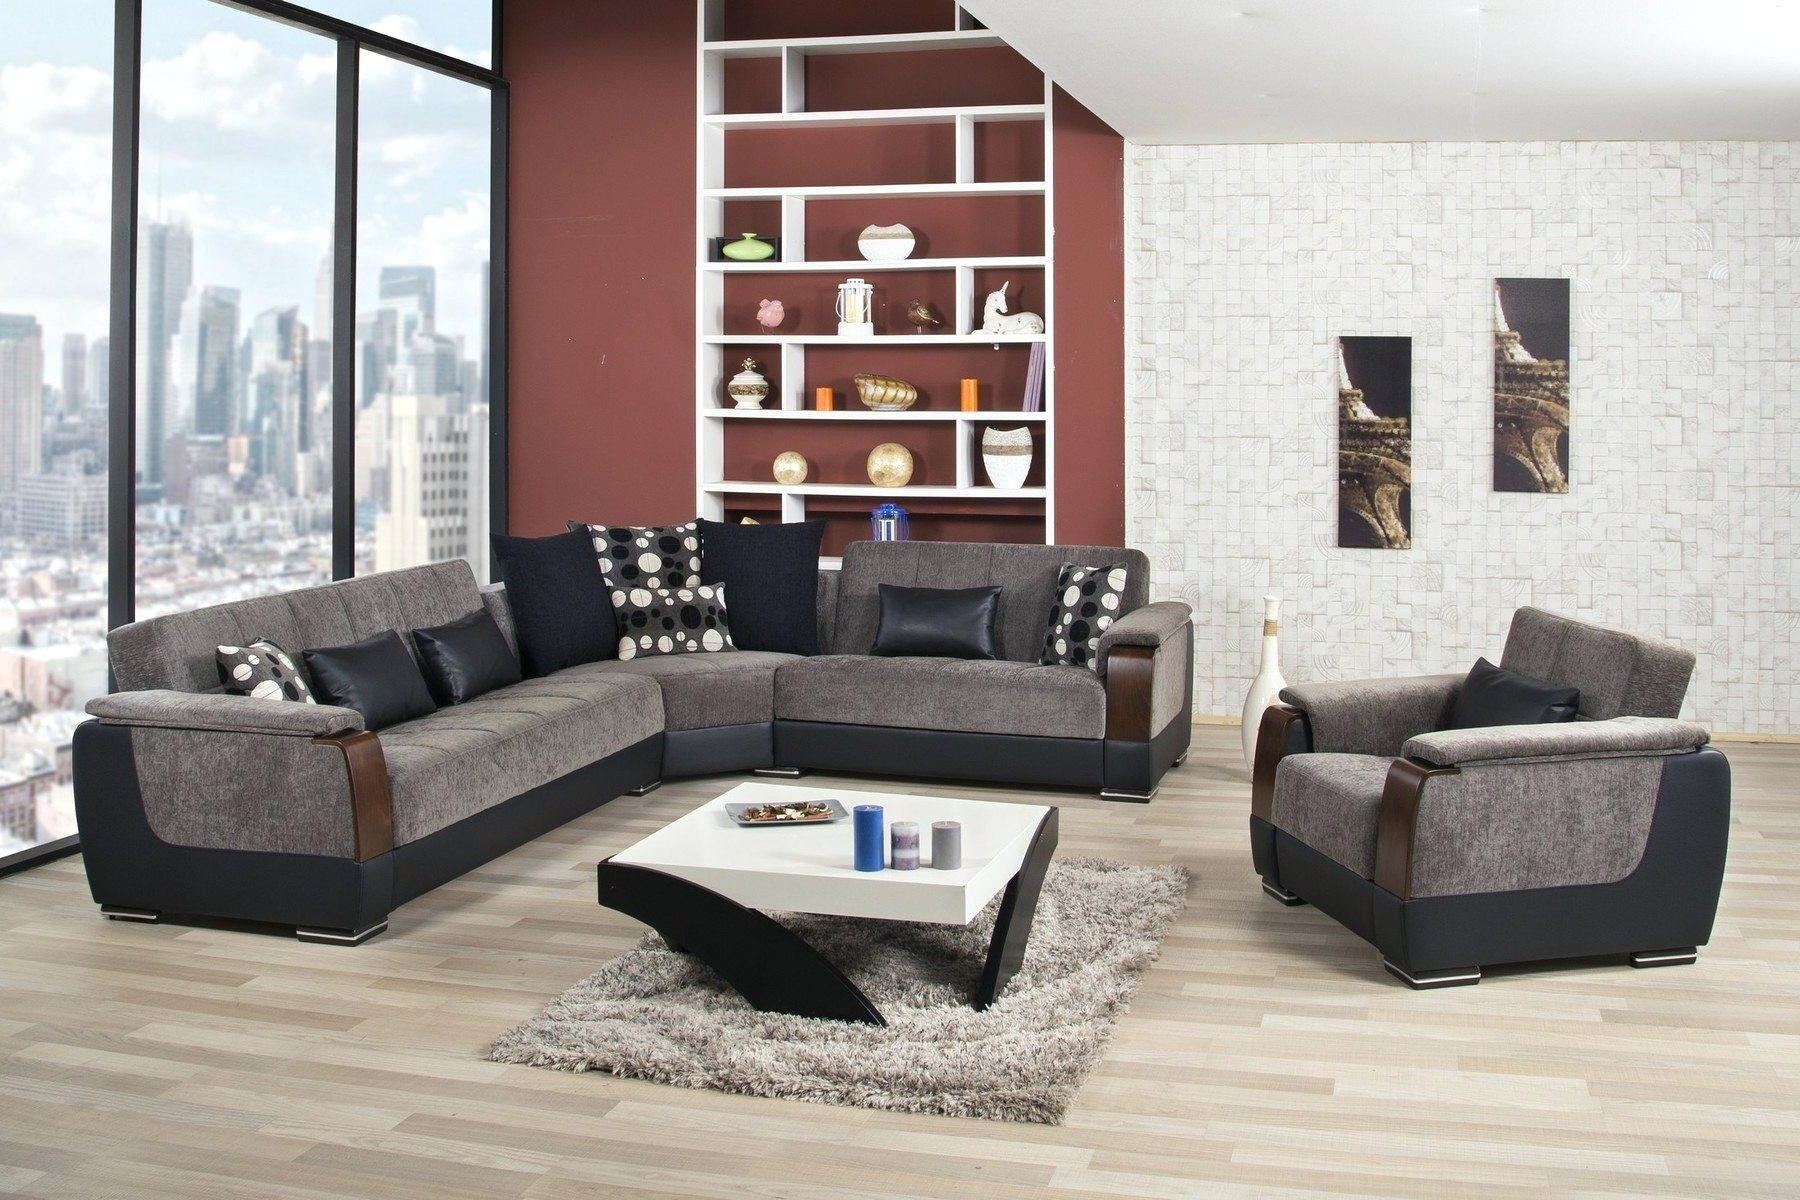 St Cloud Mn Sectional Sofas Within Well Known Becker Furniture World Mn Locations Magnolia Farms In Dining Home (View 11 of 20)